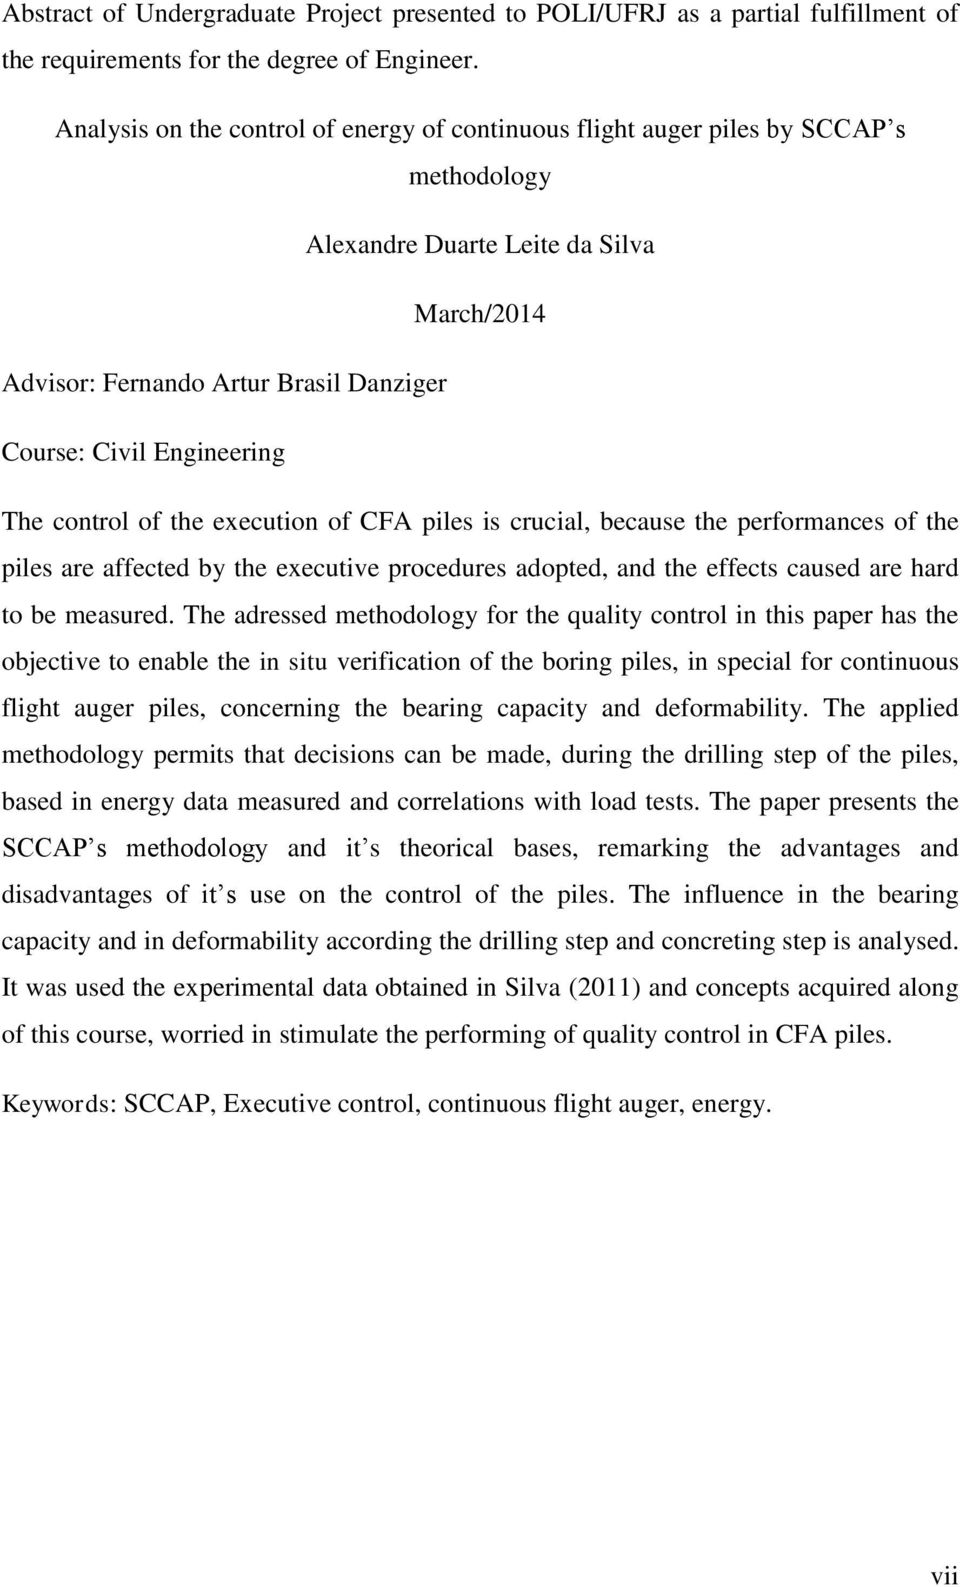 The control of the execution of CFA piles is crucial, because the performances of the piles are affected by the executive procedures adopted, and the effects caused are hard to be measured.